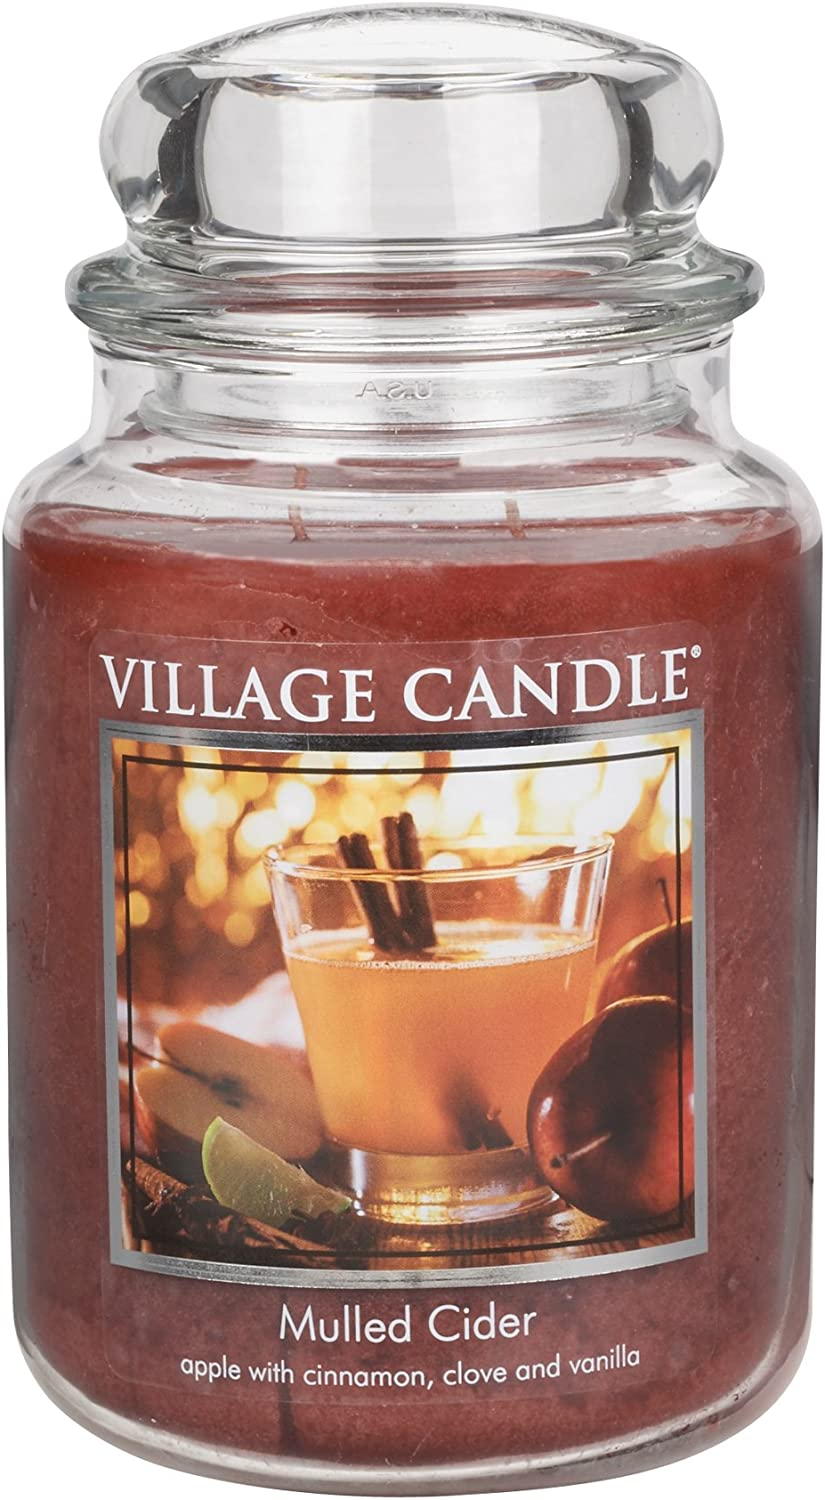 Village Candle Large Fragranced Candle Jar 17cm X 10cm 26oz 1219g Mulled Cider Upto 170 Hours Burn Time Amazon Co Uk Kitchen Home